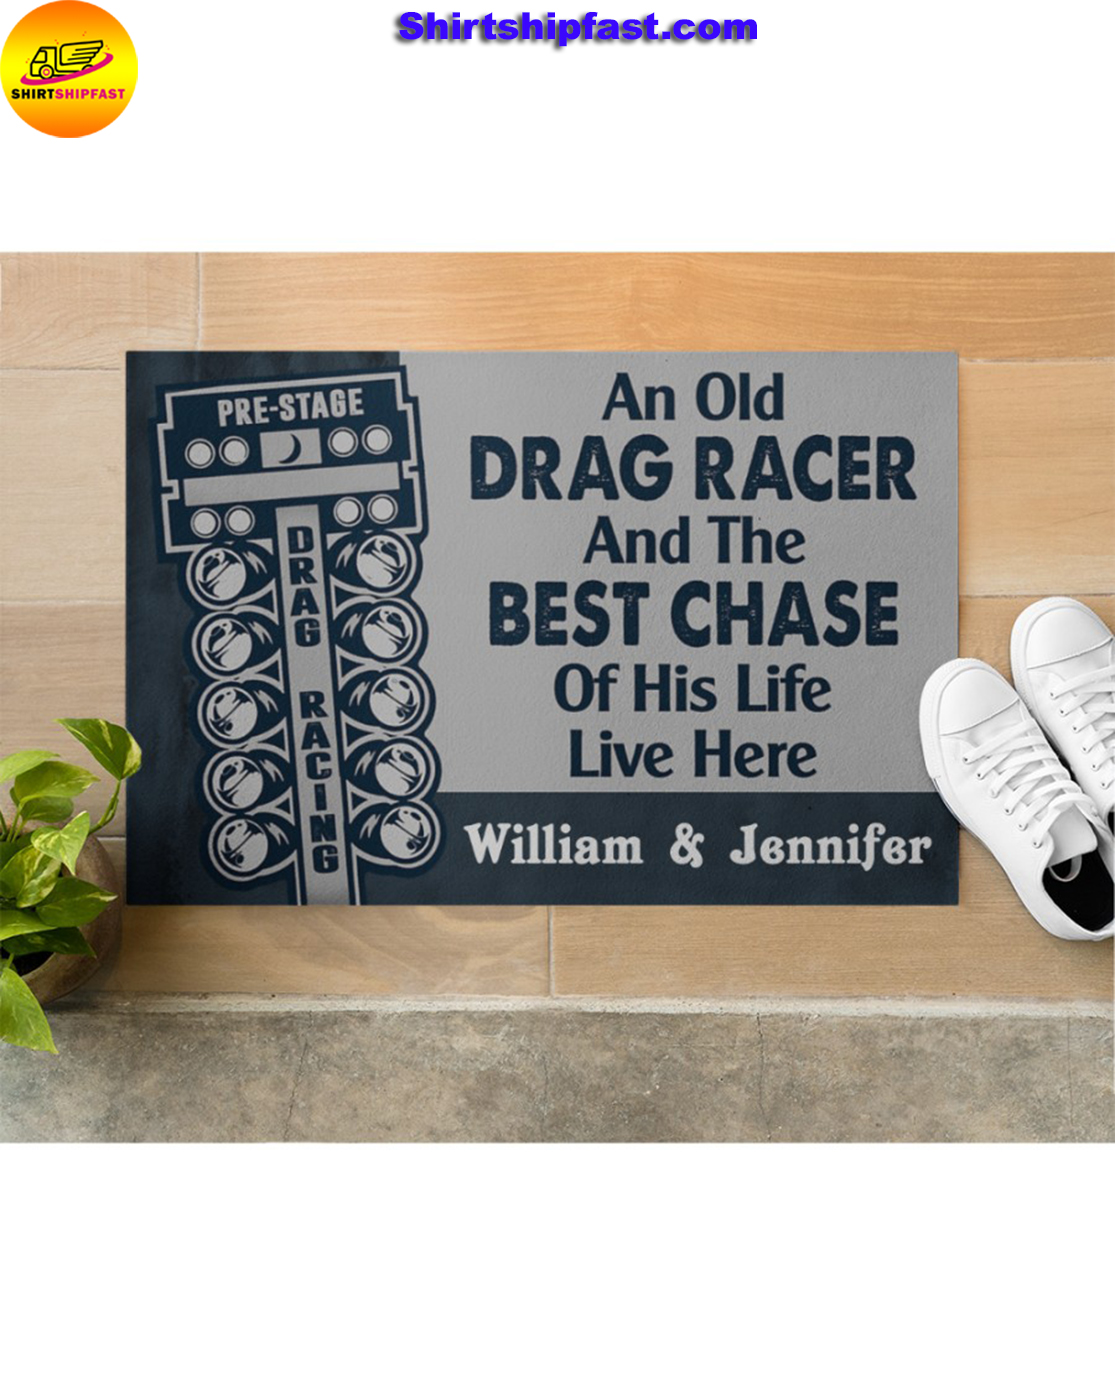 Personalized An old drag racer and the best chase of his life live here doormat - Picture 2